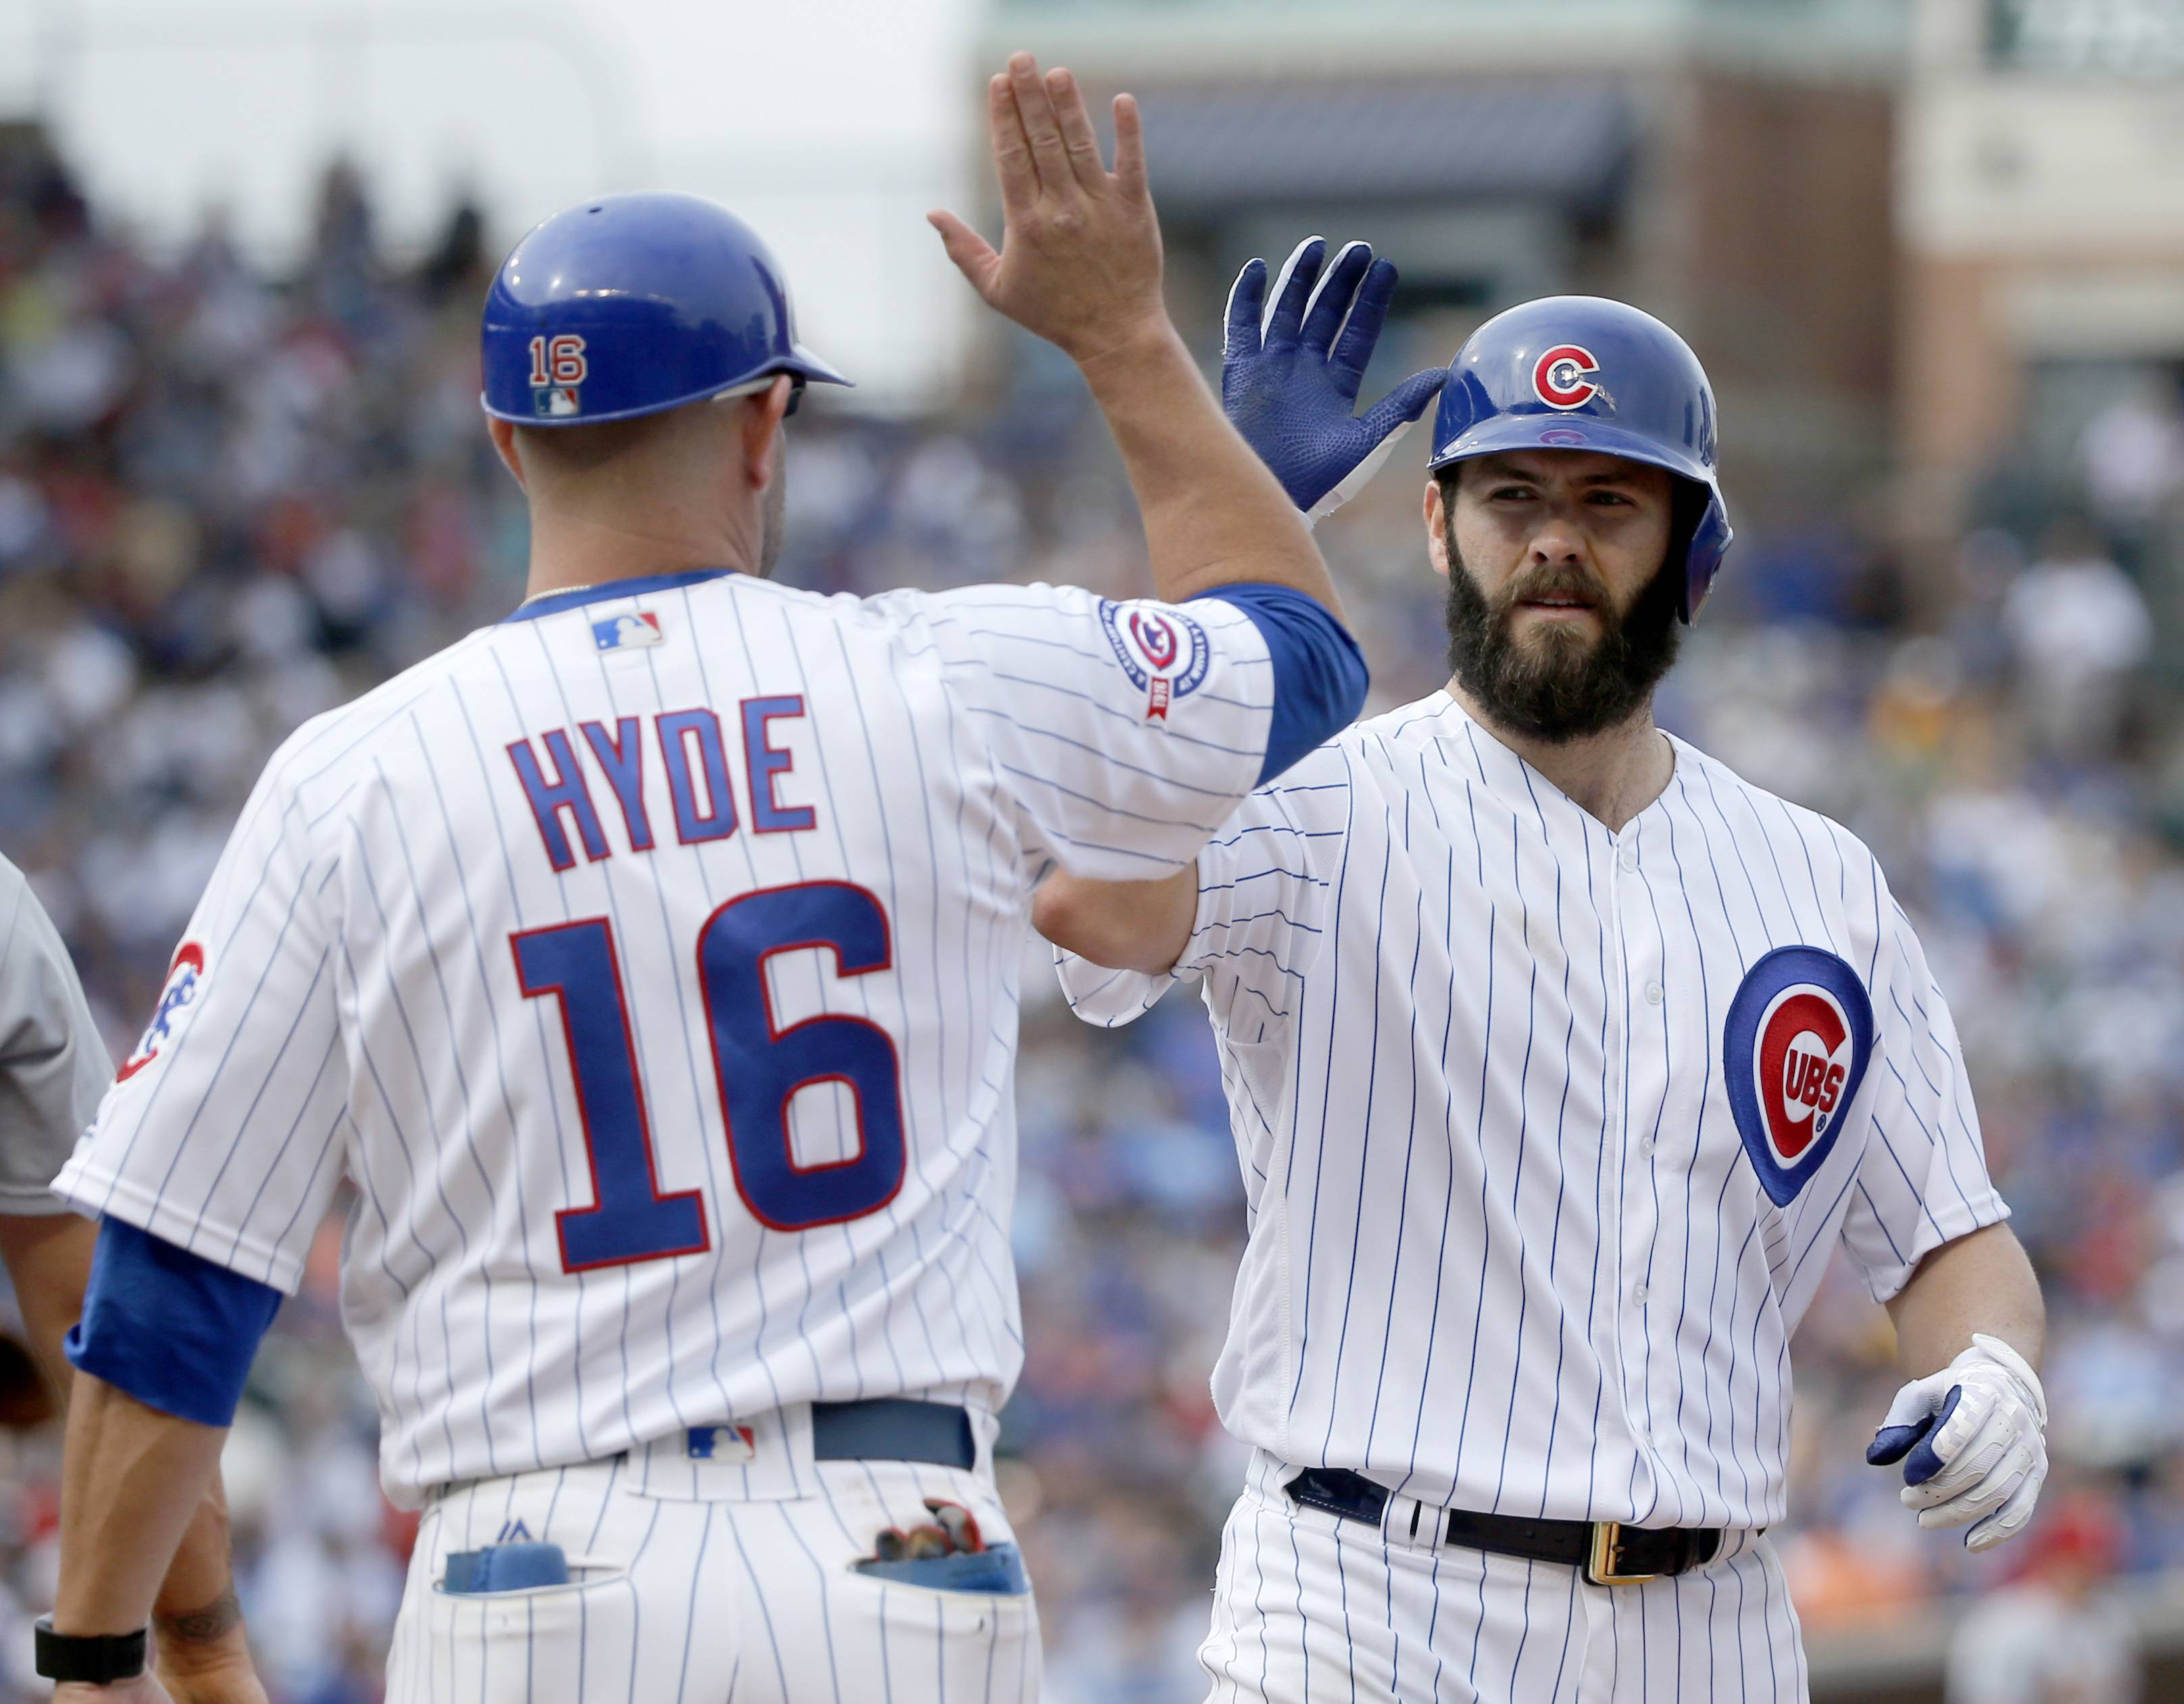 Cubs first base coach Brandon Hyde greets Jake Arrieta at first after Arrieta's single off St. Louis Cardinals starting pitcher Mike Leake during the fourth inning on Friday in Chicago.